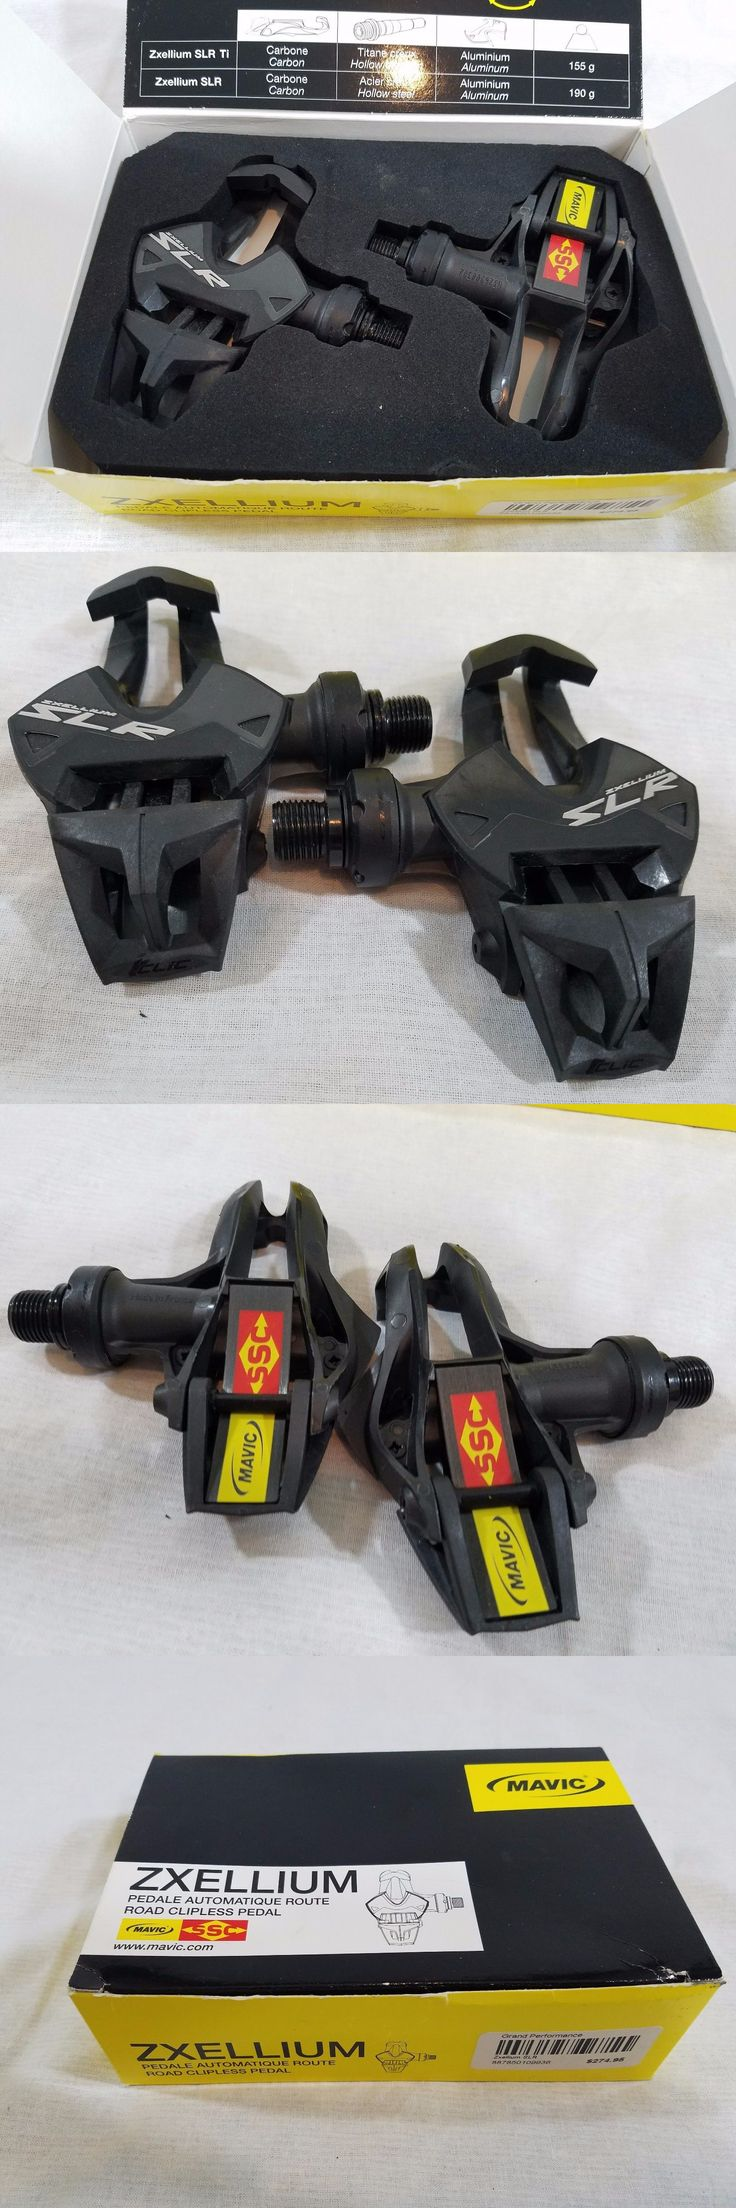 Pedals 36137: Mavic Zxellium Slr Road Pedals Carbon Black 9T -> BUY IT NOW ONLY: $129.95 on eBay!